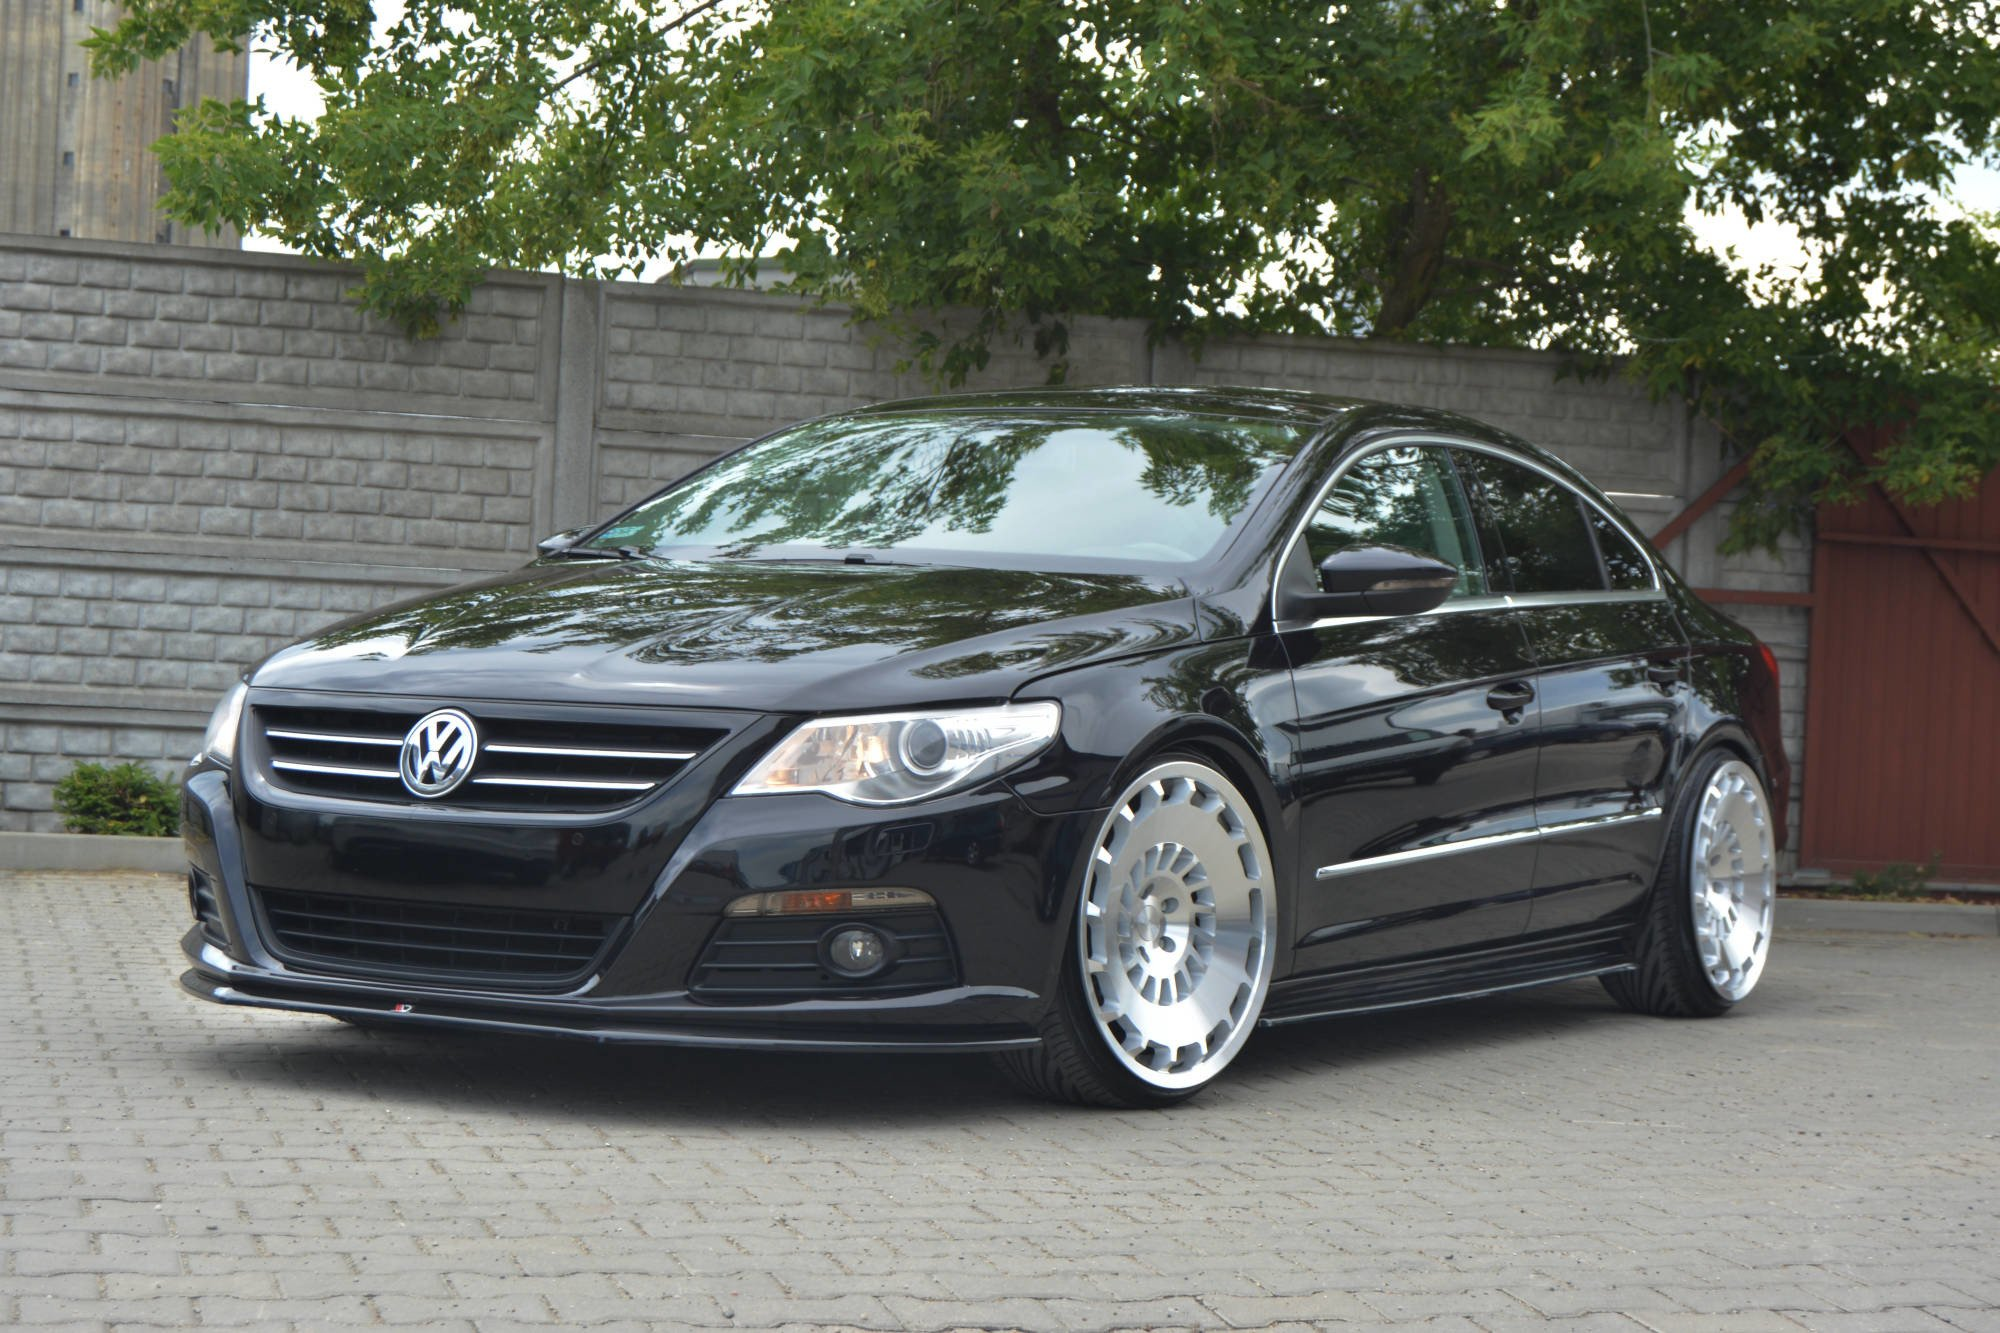 Side Skirts Diffusers Vw Passat Cc Standard Textured Our Offer Volkswagen Cc Maxton Design